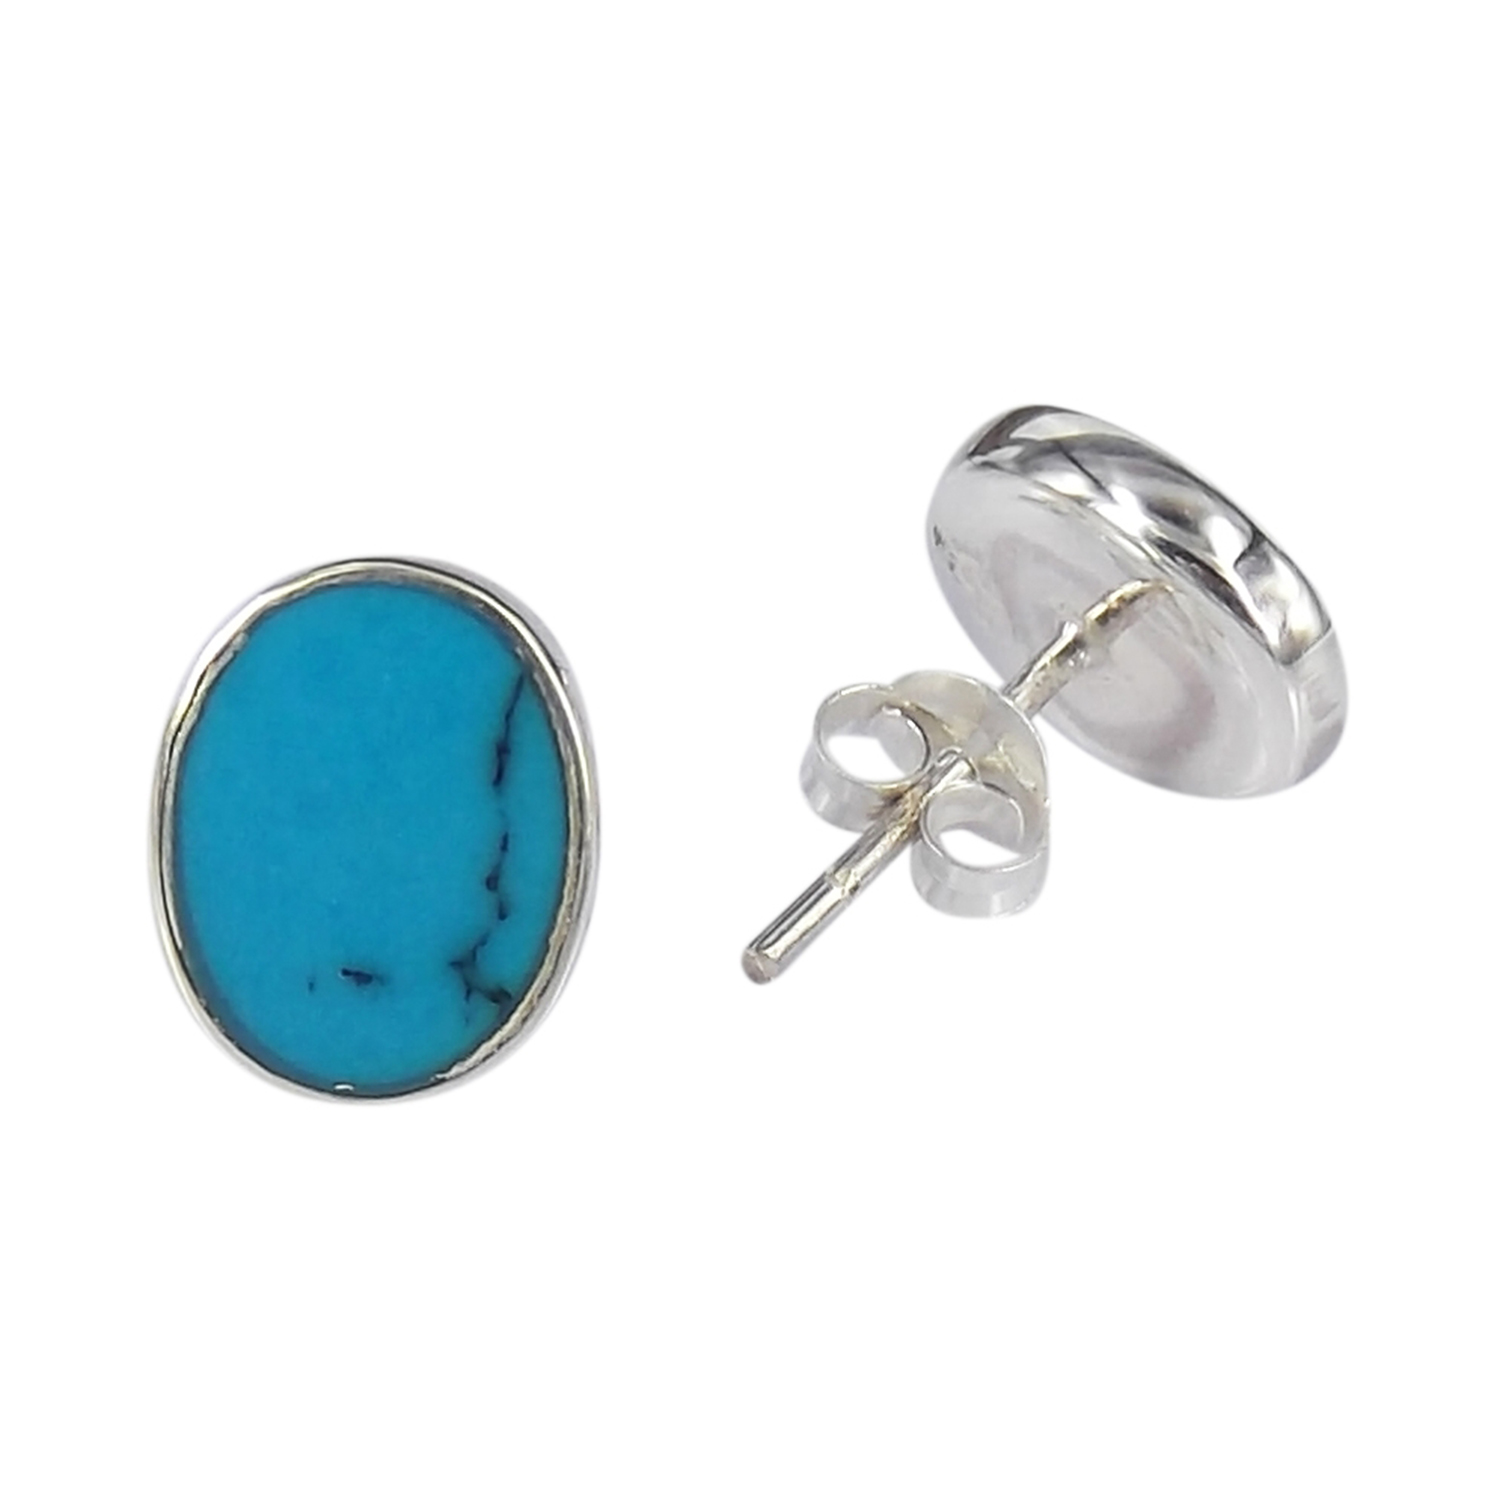 Small Blue Earrings: Classy Small Oval Blue Turquoise .925 Silver Post Earrings